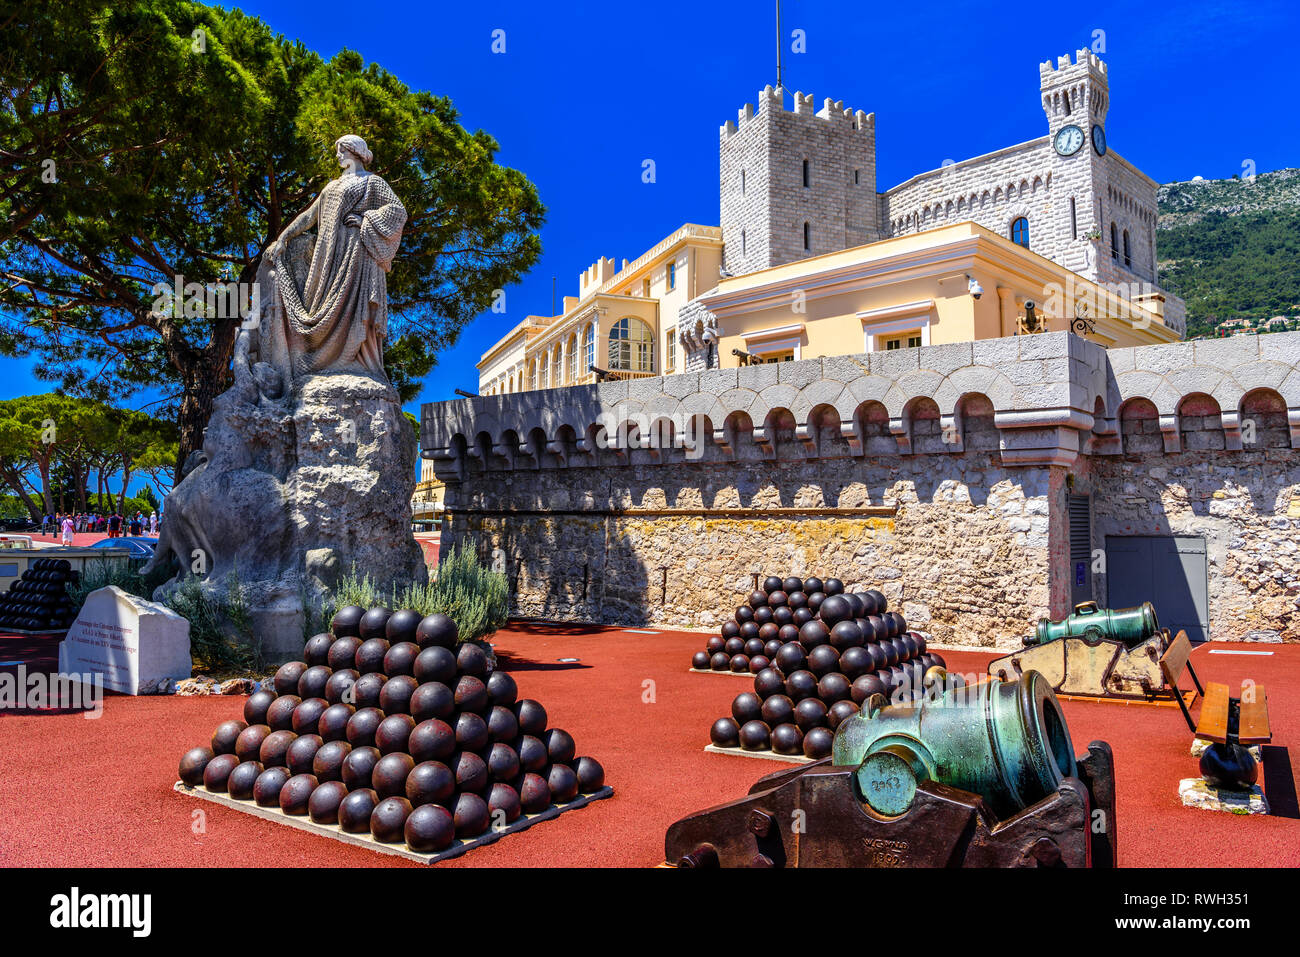 Sculpture tribute of foreign colonies with cannonballs and cannons in price's palace, Fontvielle, Monte-Carlo, Monaco, Cote d'Azur, French Riviera. - Stock Image